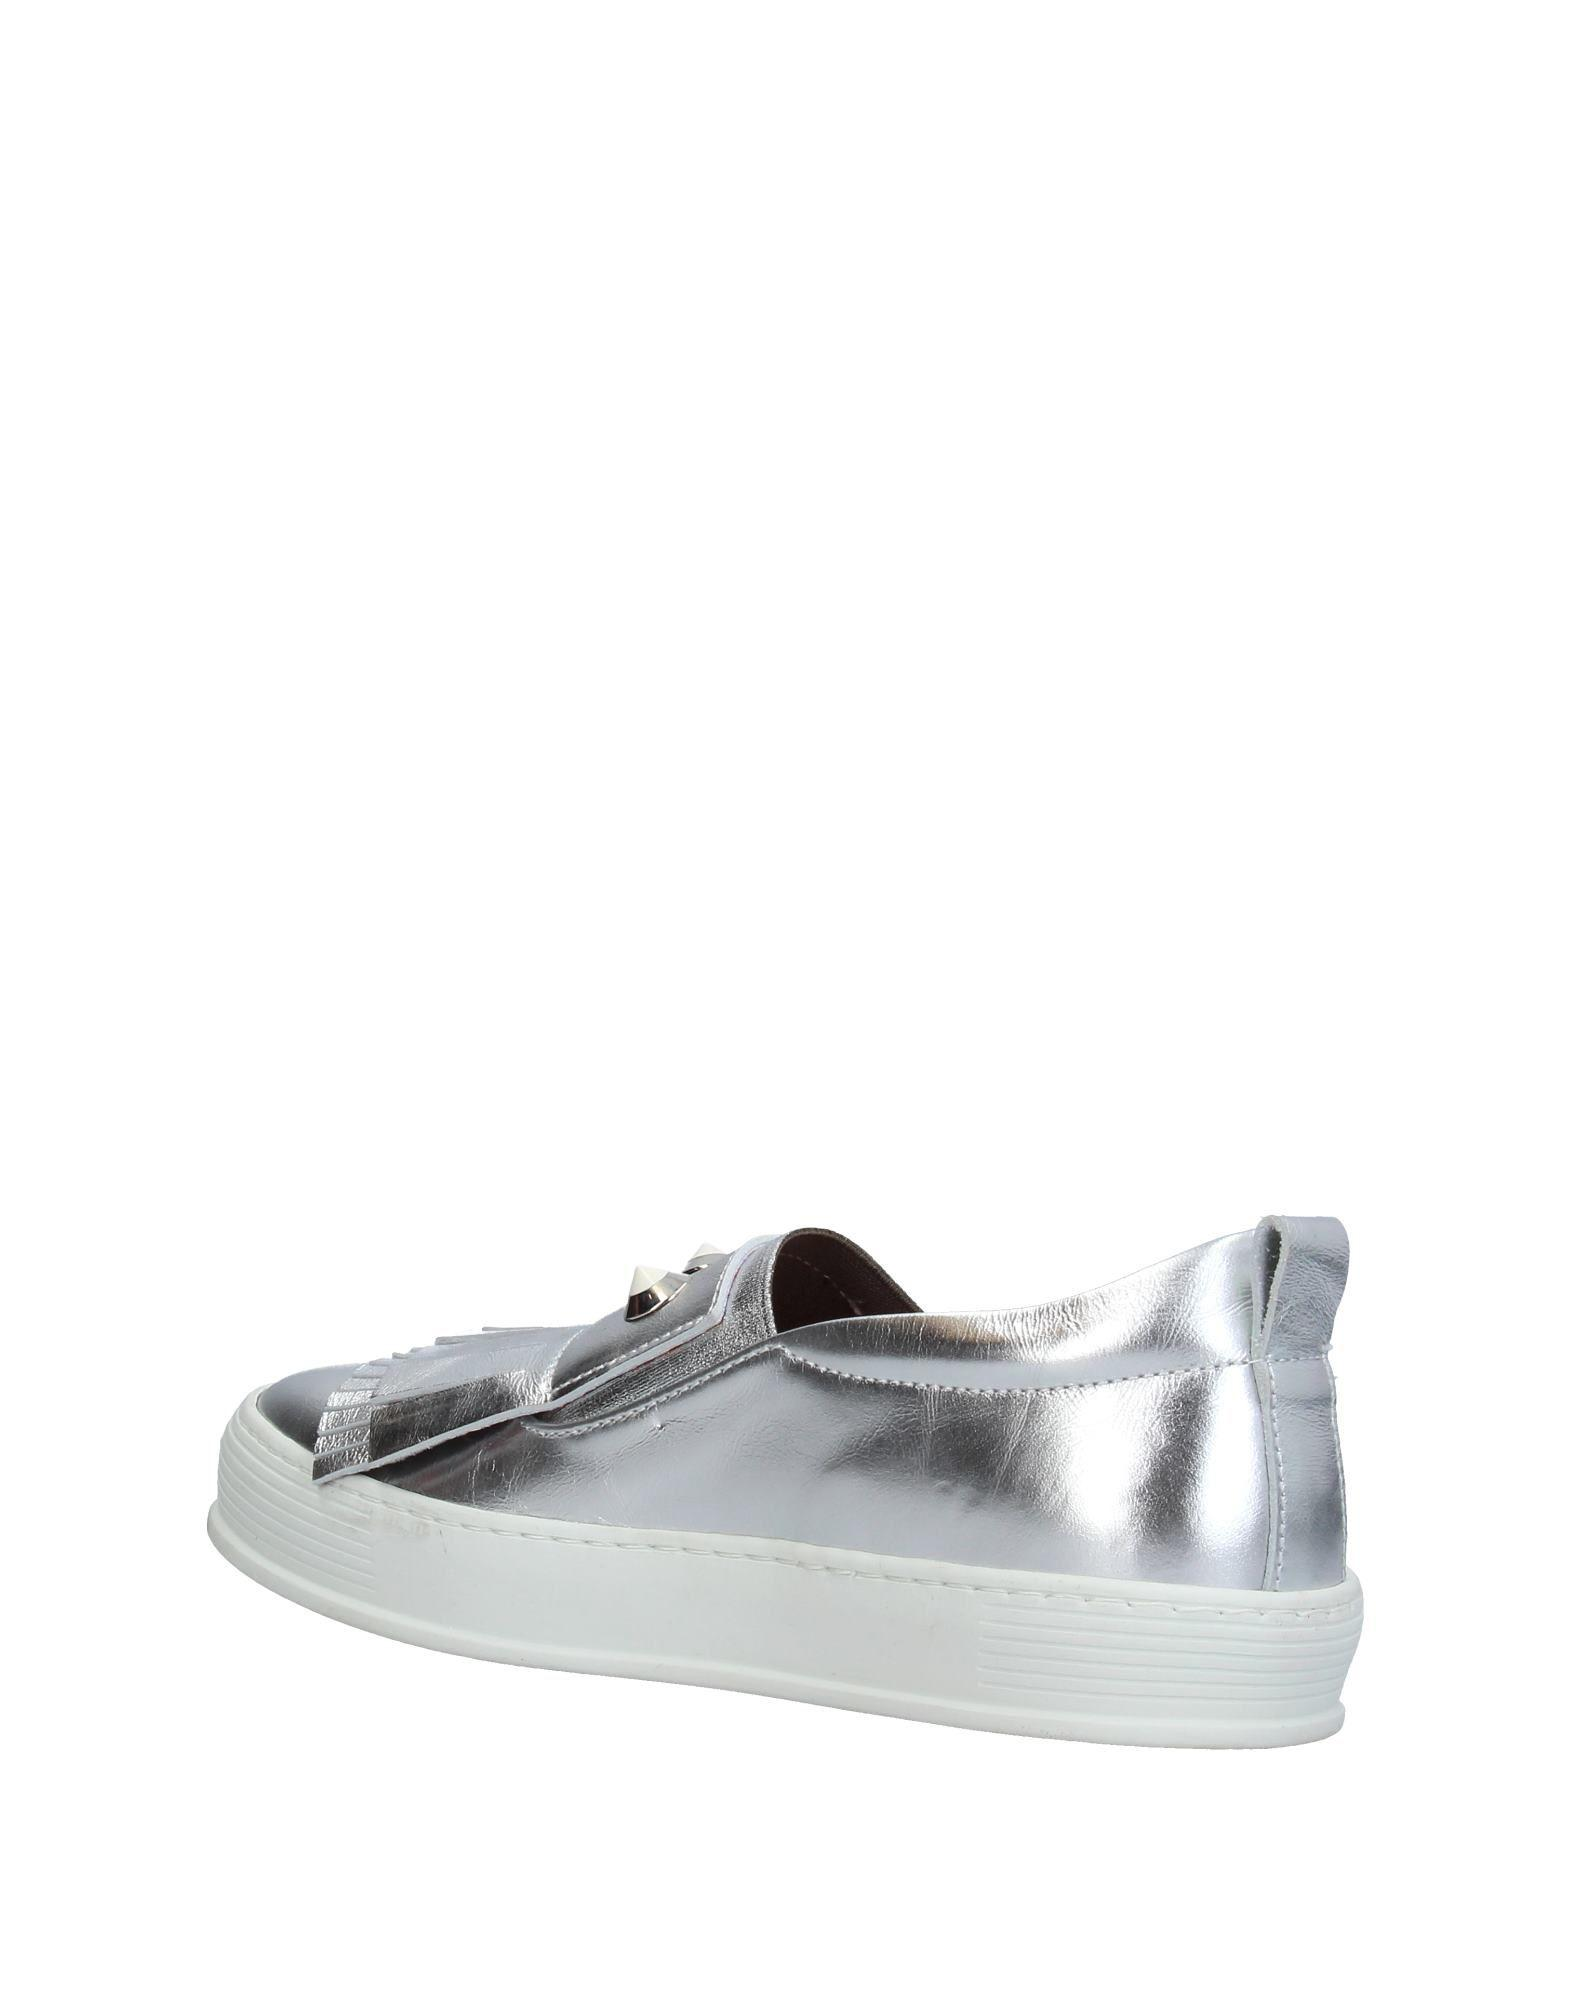 Flow Leather Low-tops & Sneakers in Silver (Metallic)